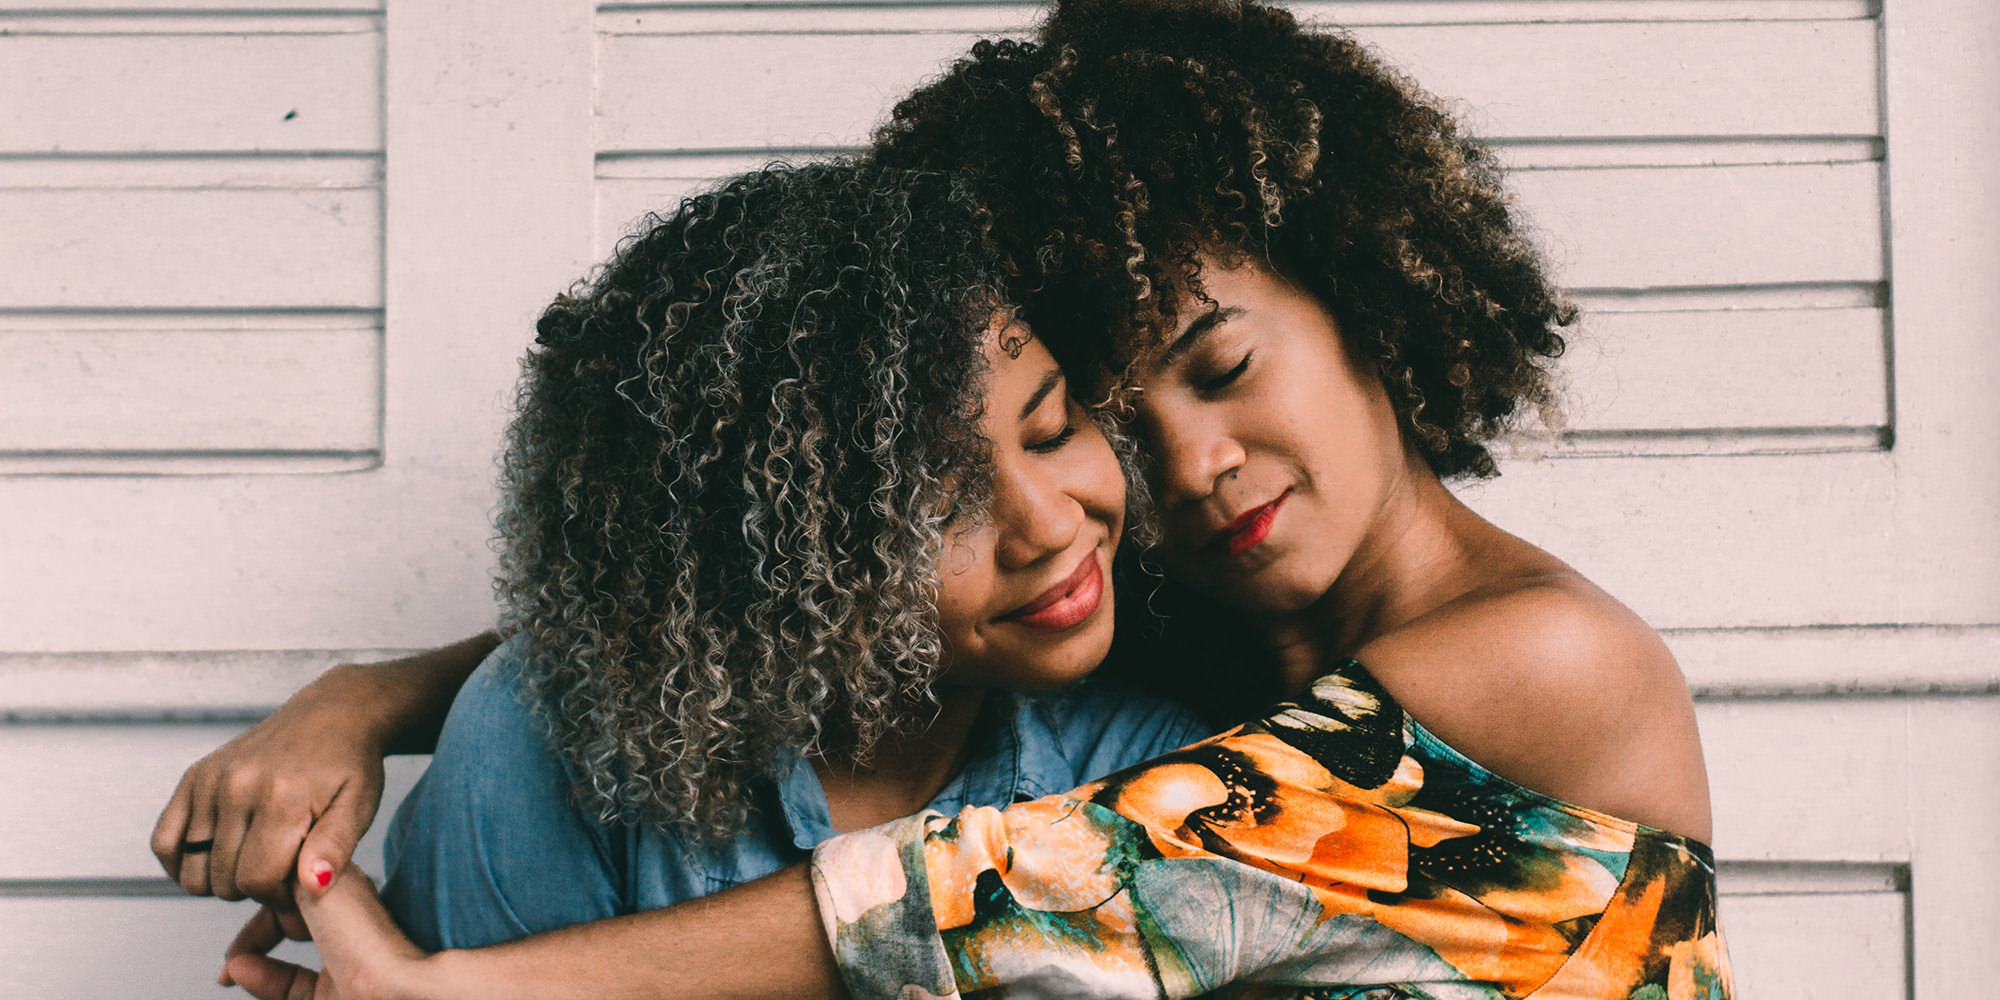 Two young a black women with long curly hair sitting together. The older one is hugging the younger one, who looks to be in her teens. They look like they might be sisters.